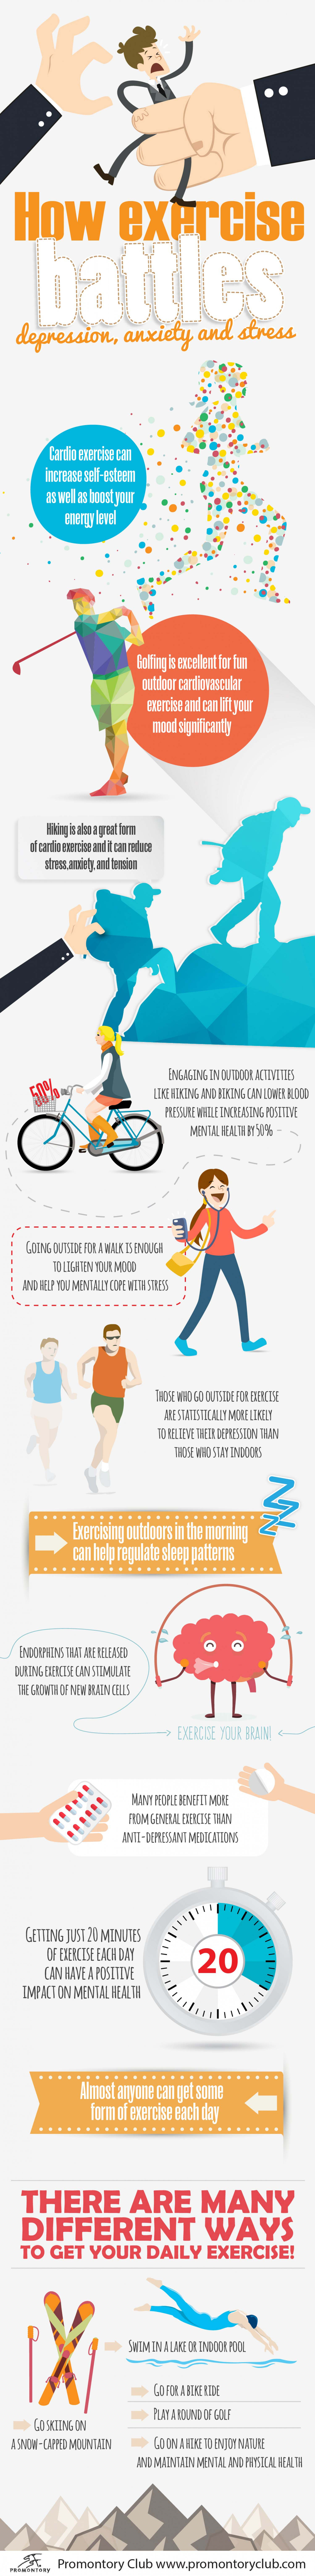 Exercise Can Get Rid of Depression, Anxiety and Stress